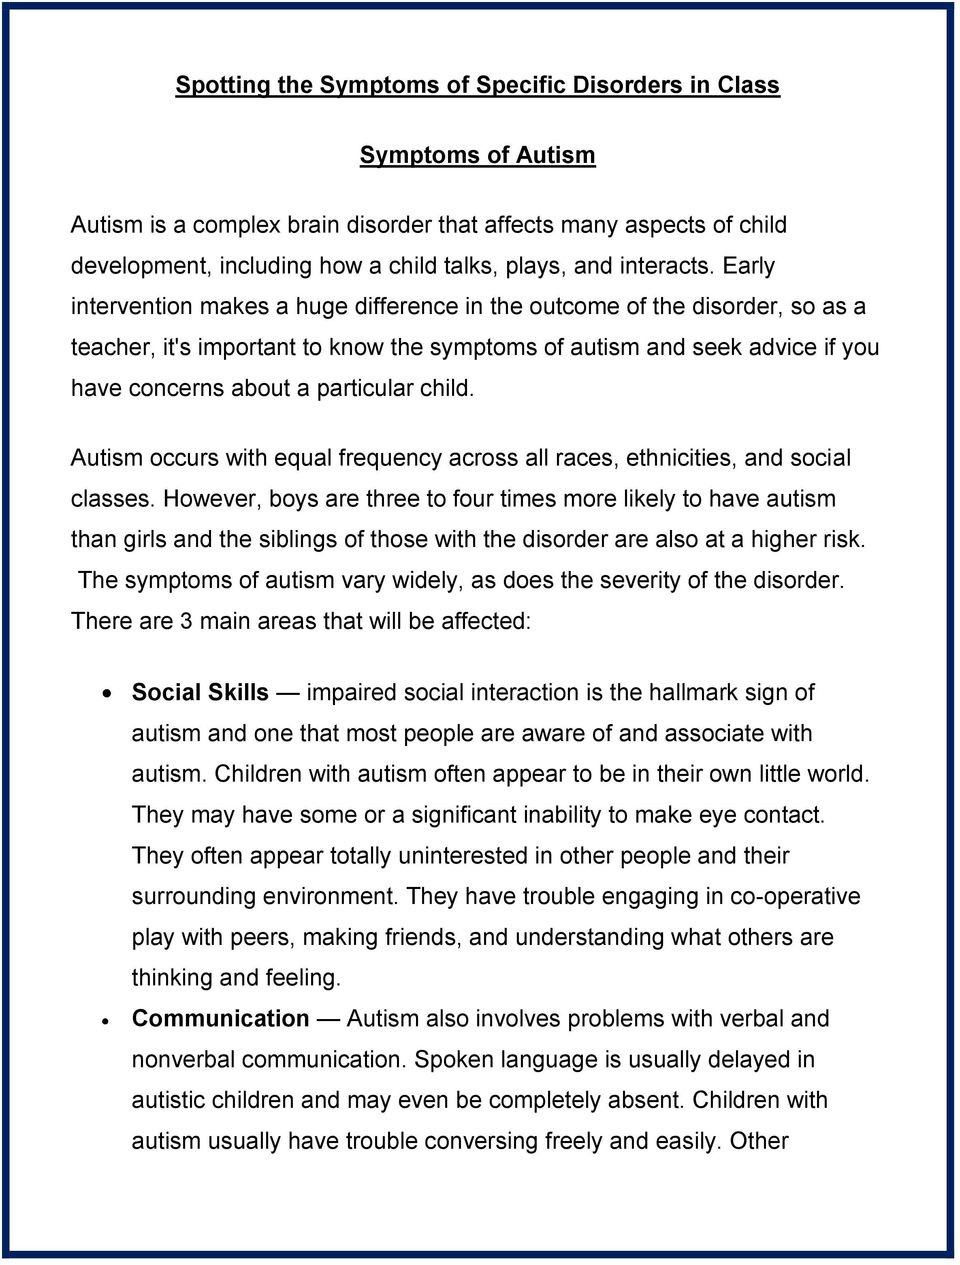 Early intervention makes a huge difference in the outcome of the disorder, so as a teacher, it's important to know the symptoms of autism and seek advice if you have concerns about a particular child.